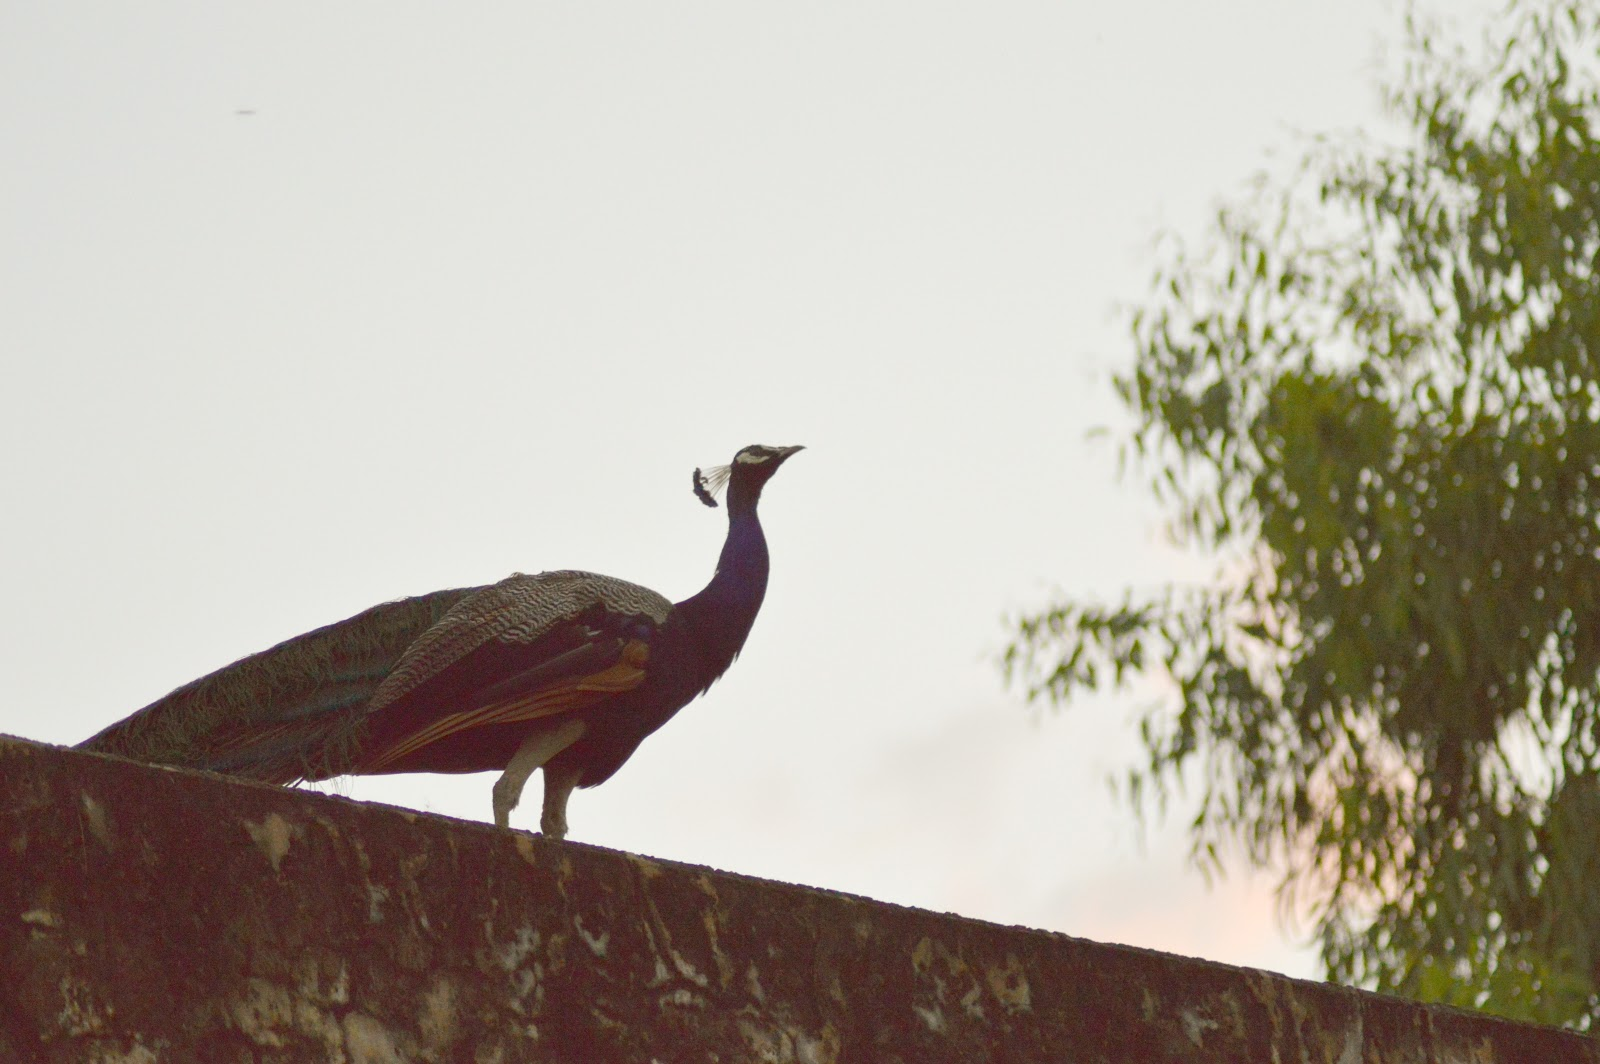 peacock-on-concrete-wall-pictures